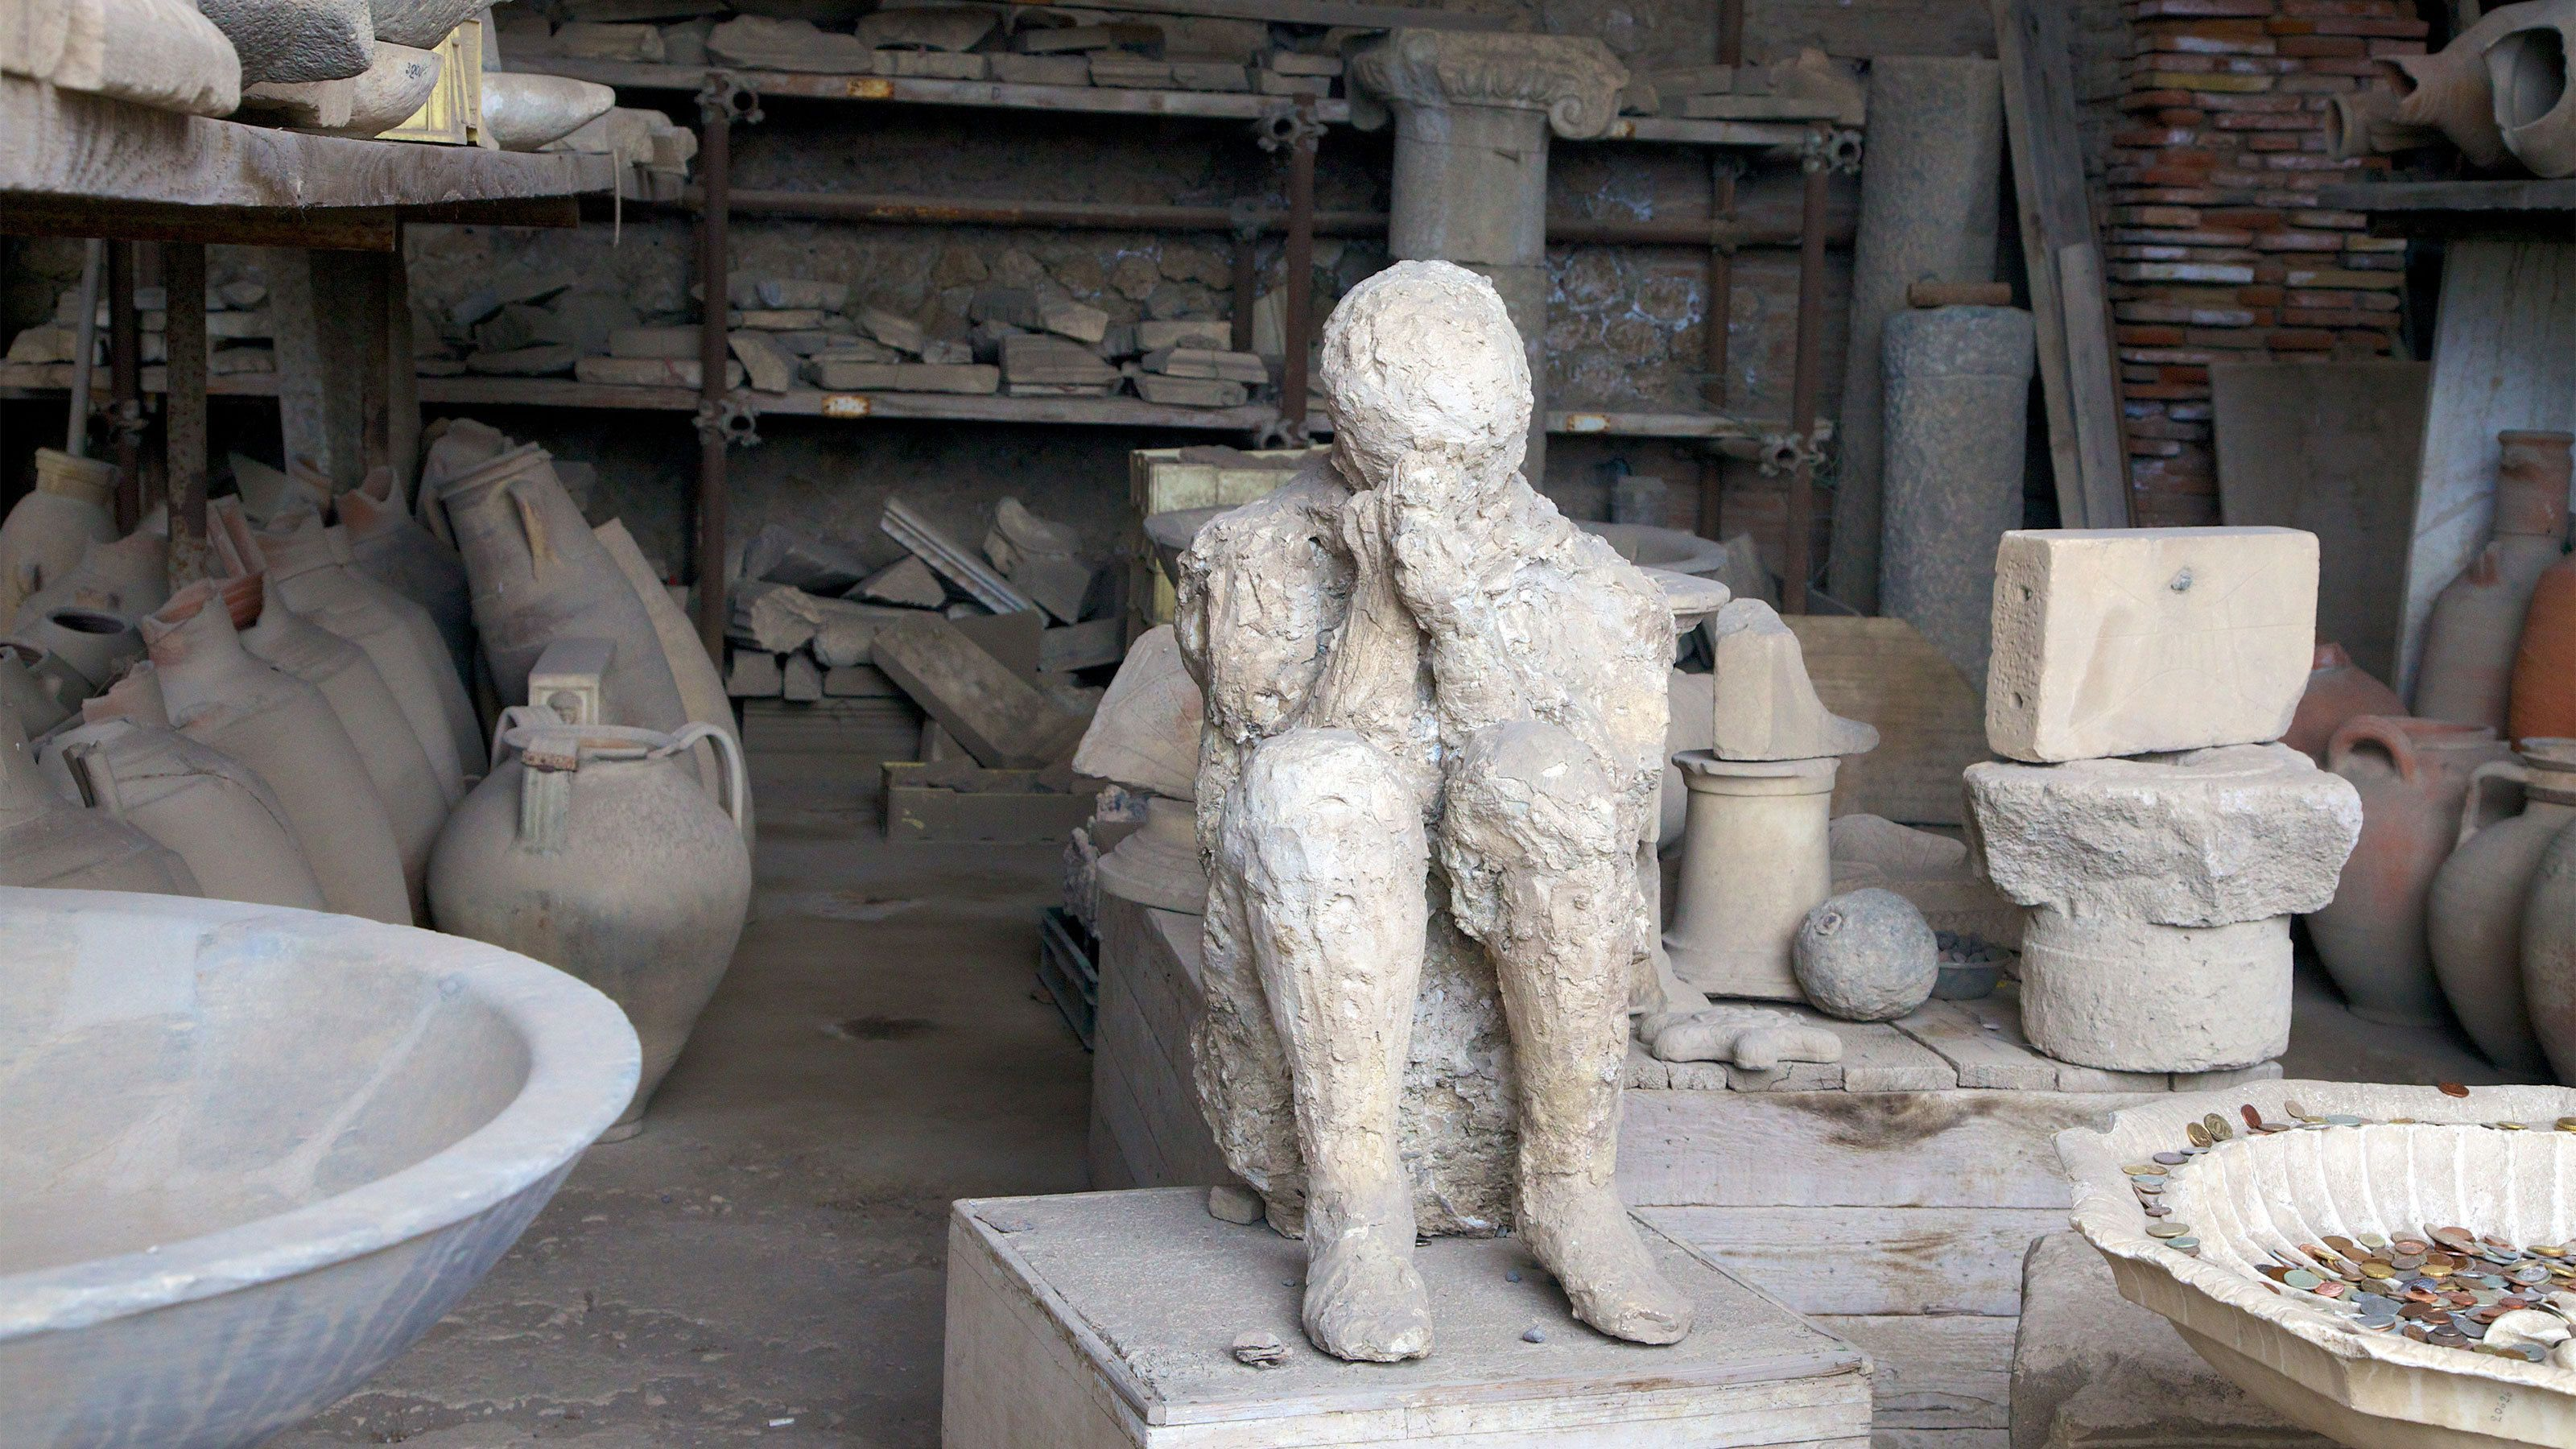 The preserved cast of one of the victims in Pompeii